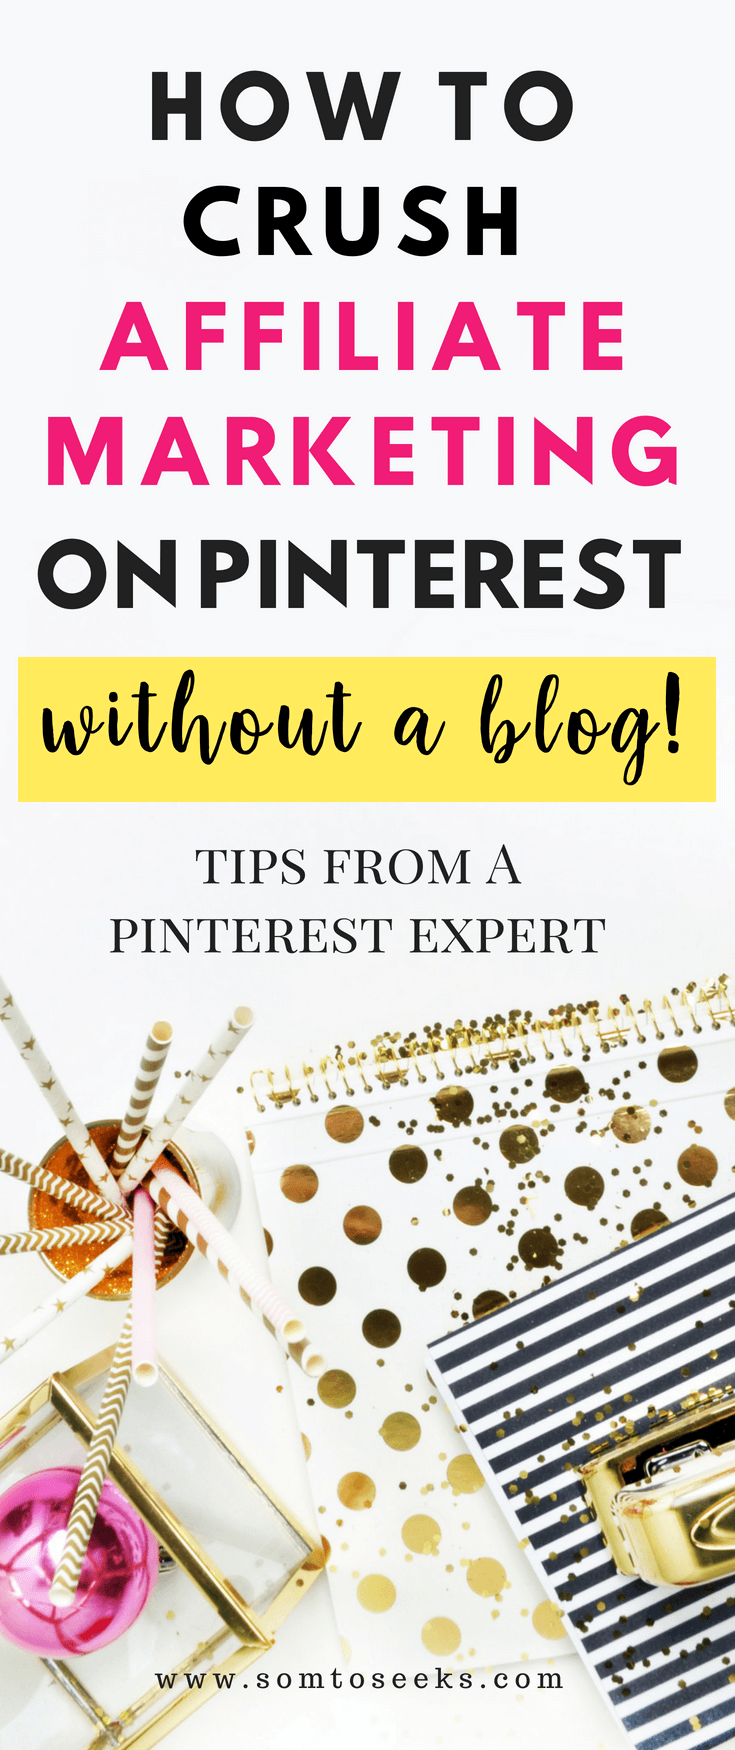 Affiliate Marketing on Pinterest Without a Blog - Expert Tips (2018)